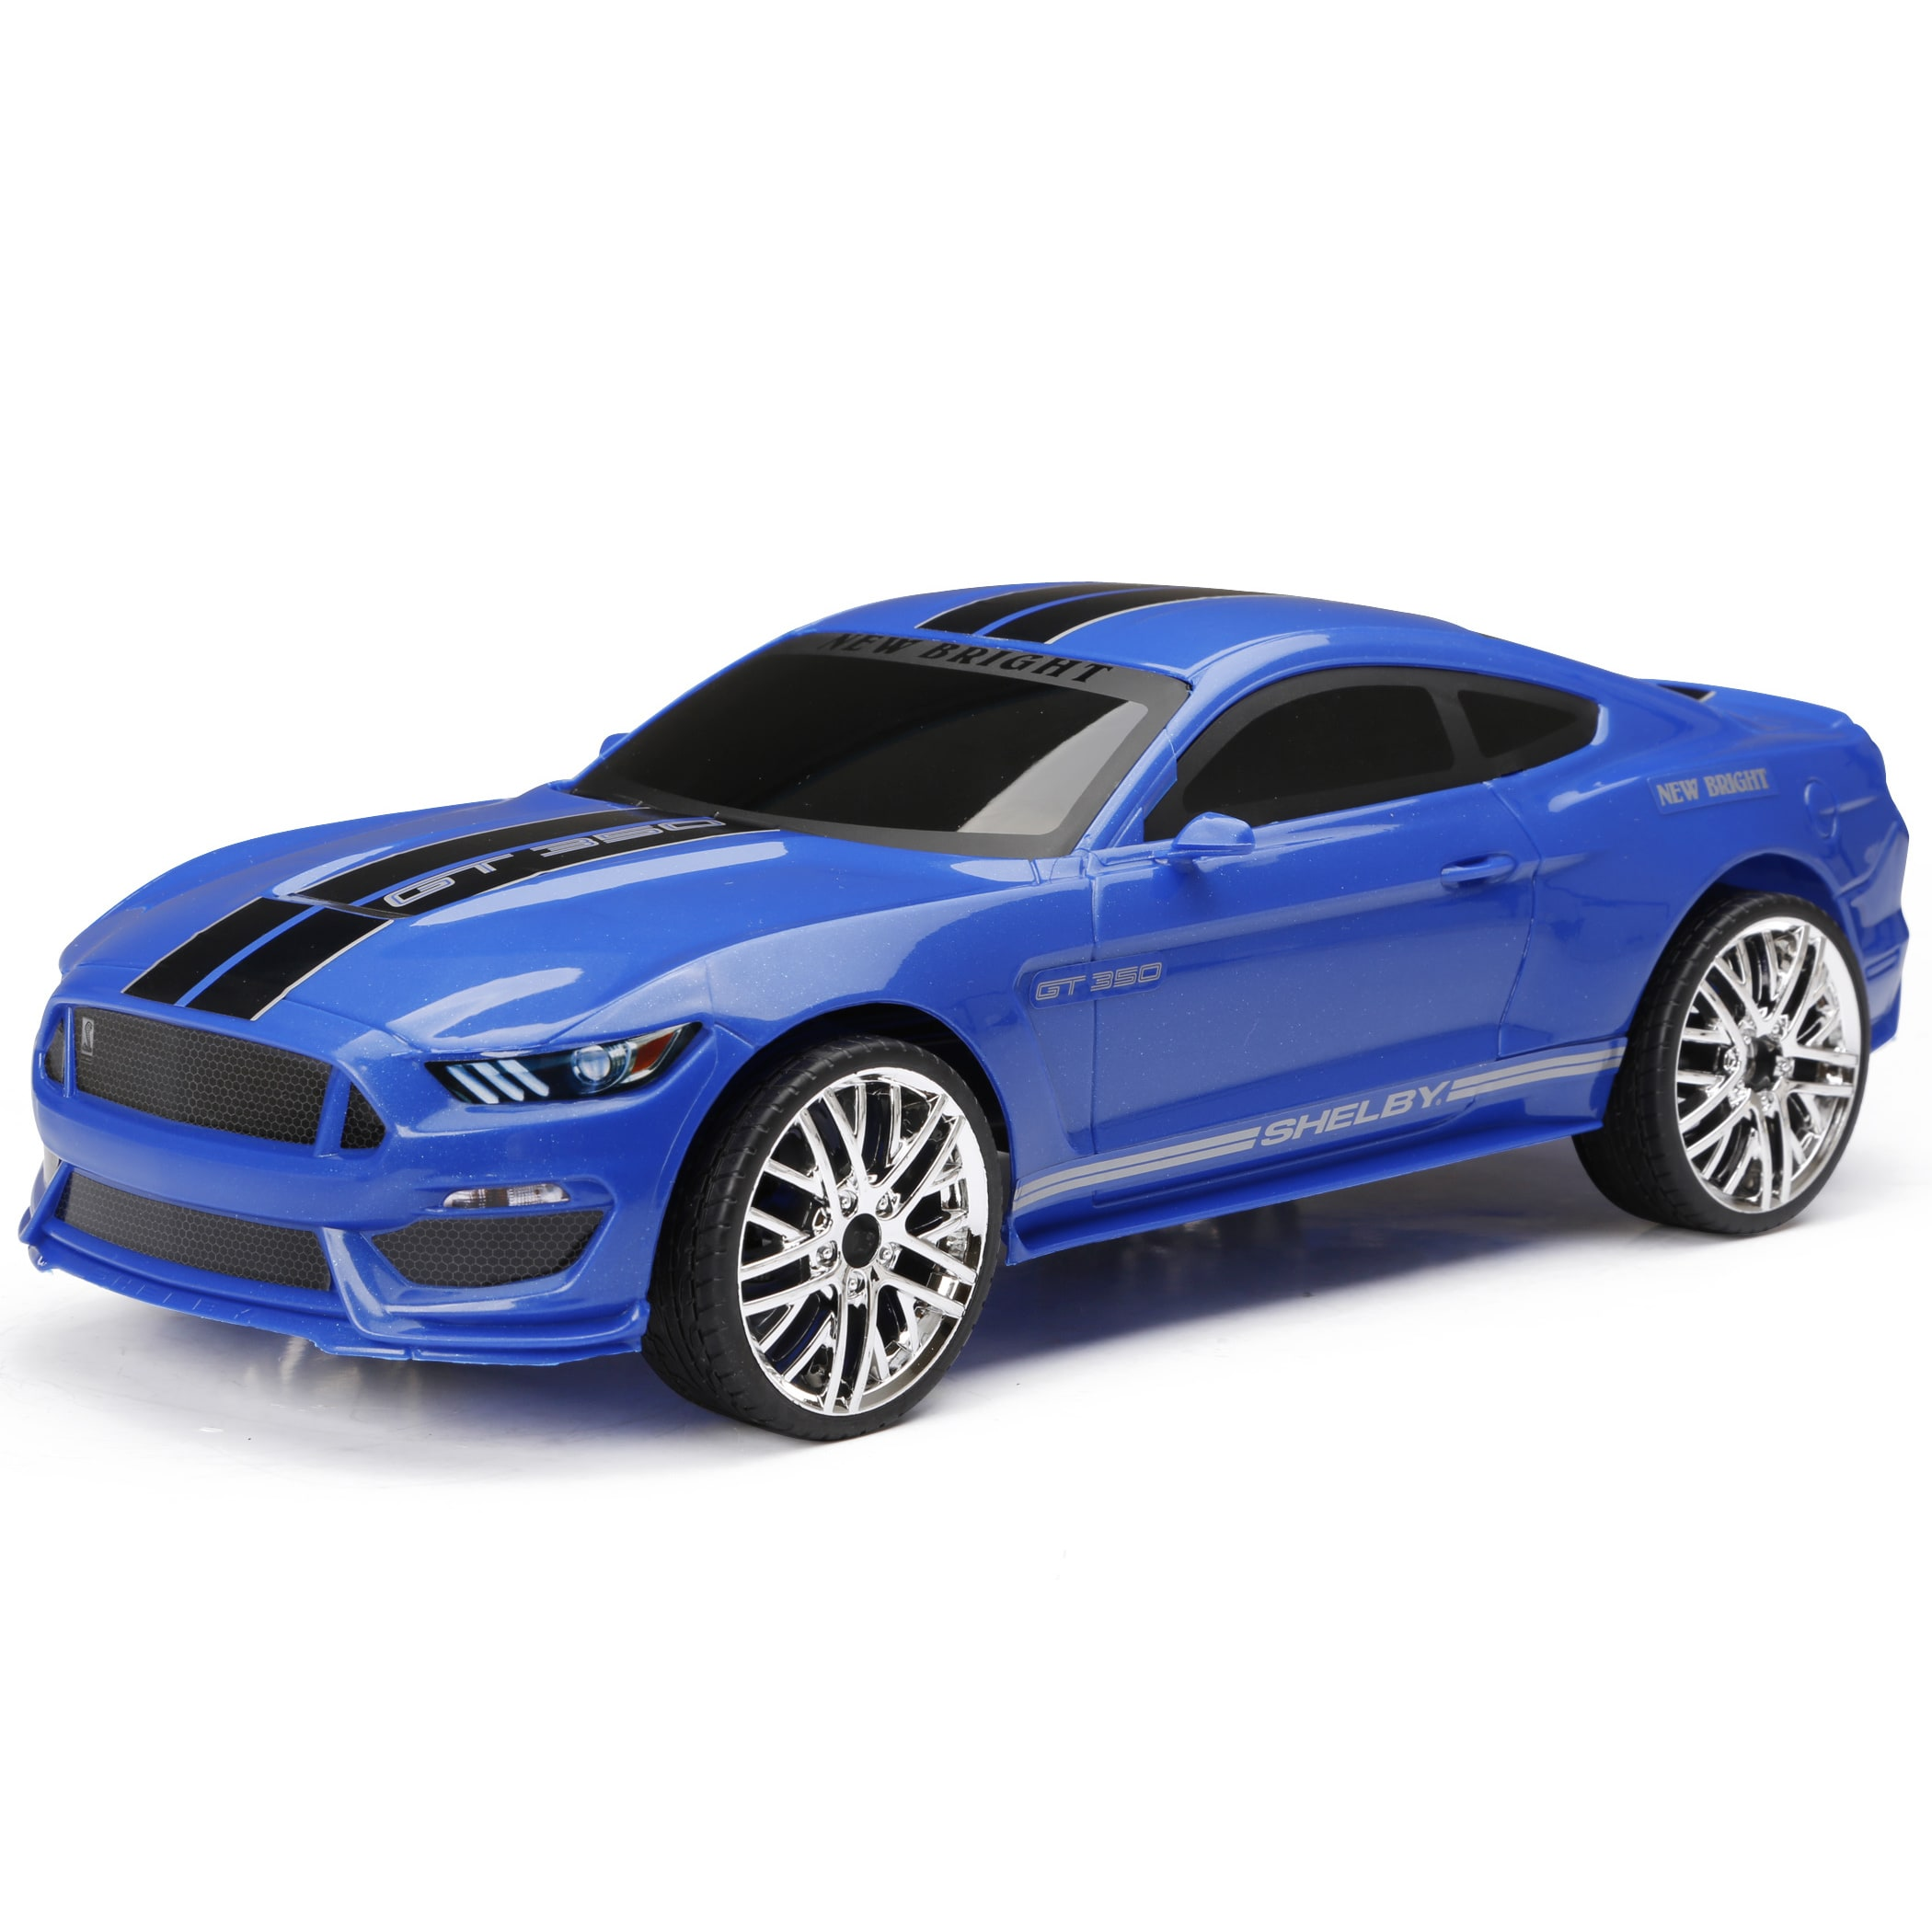 New Bright 1:12 R/C Full-function Shelby Mustang (1:12 R/...